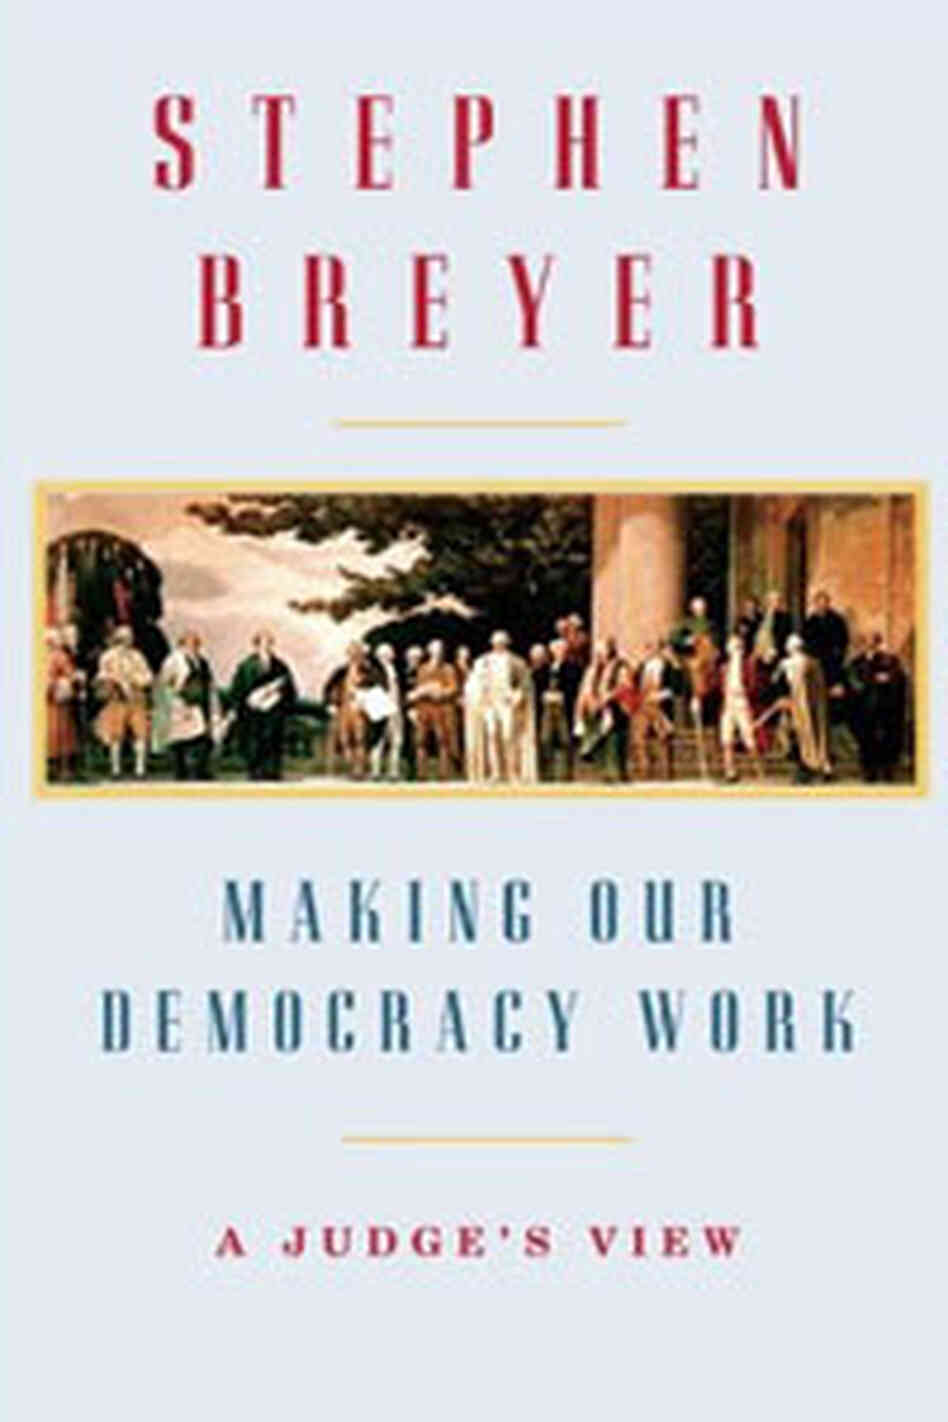 Making Our Democracy Work by Supreme Court Justice Stephen Breyer